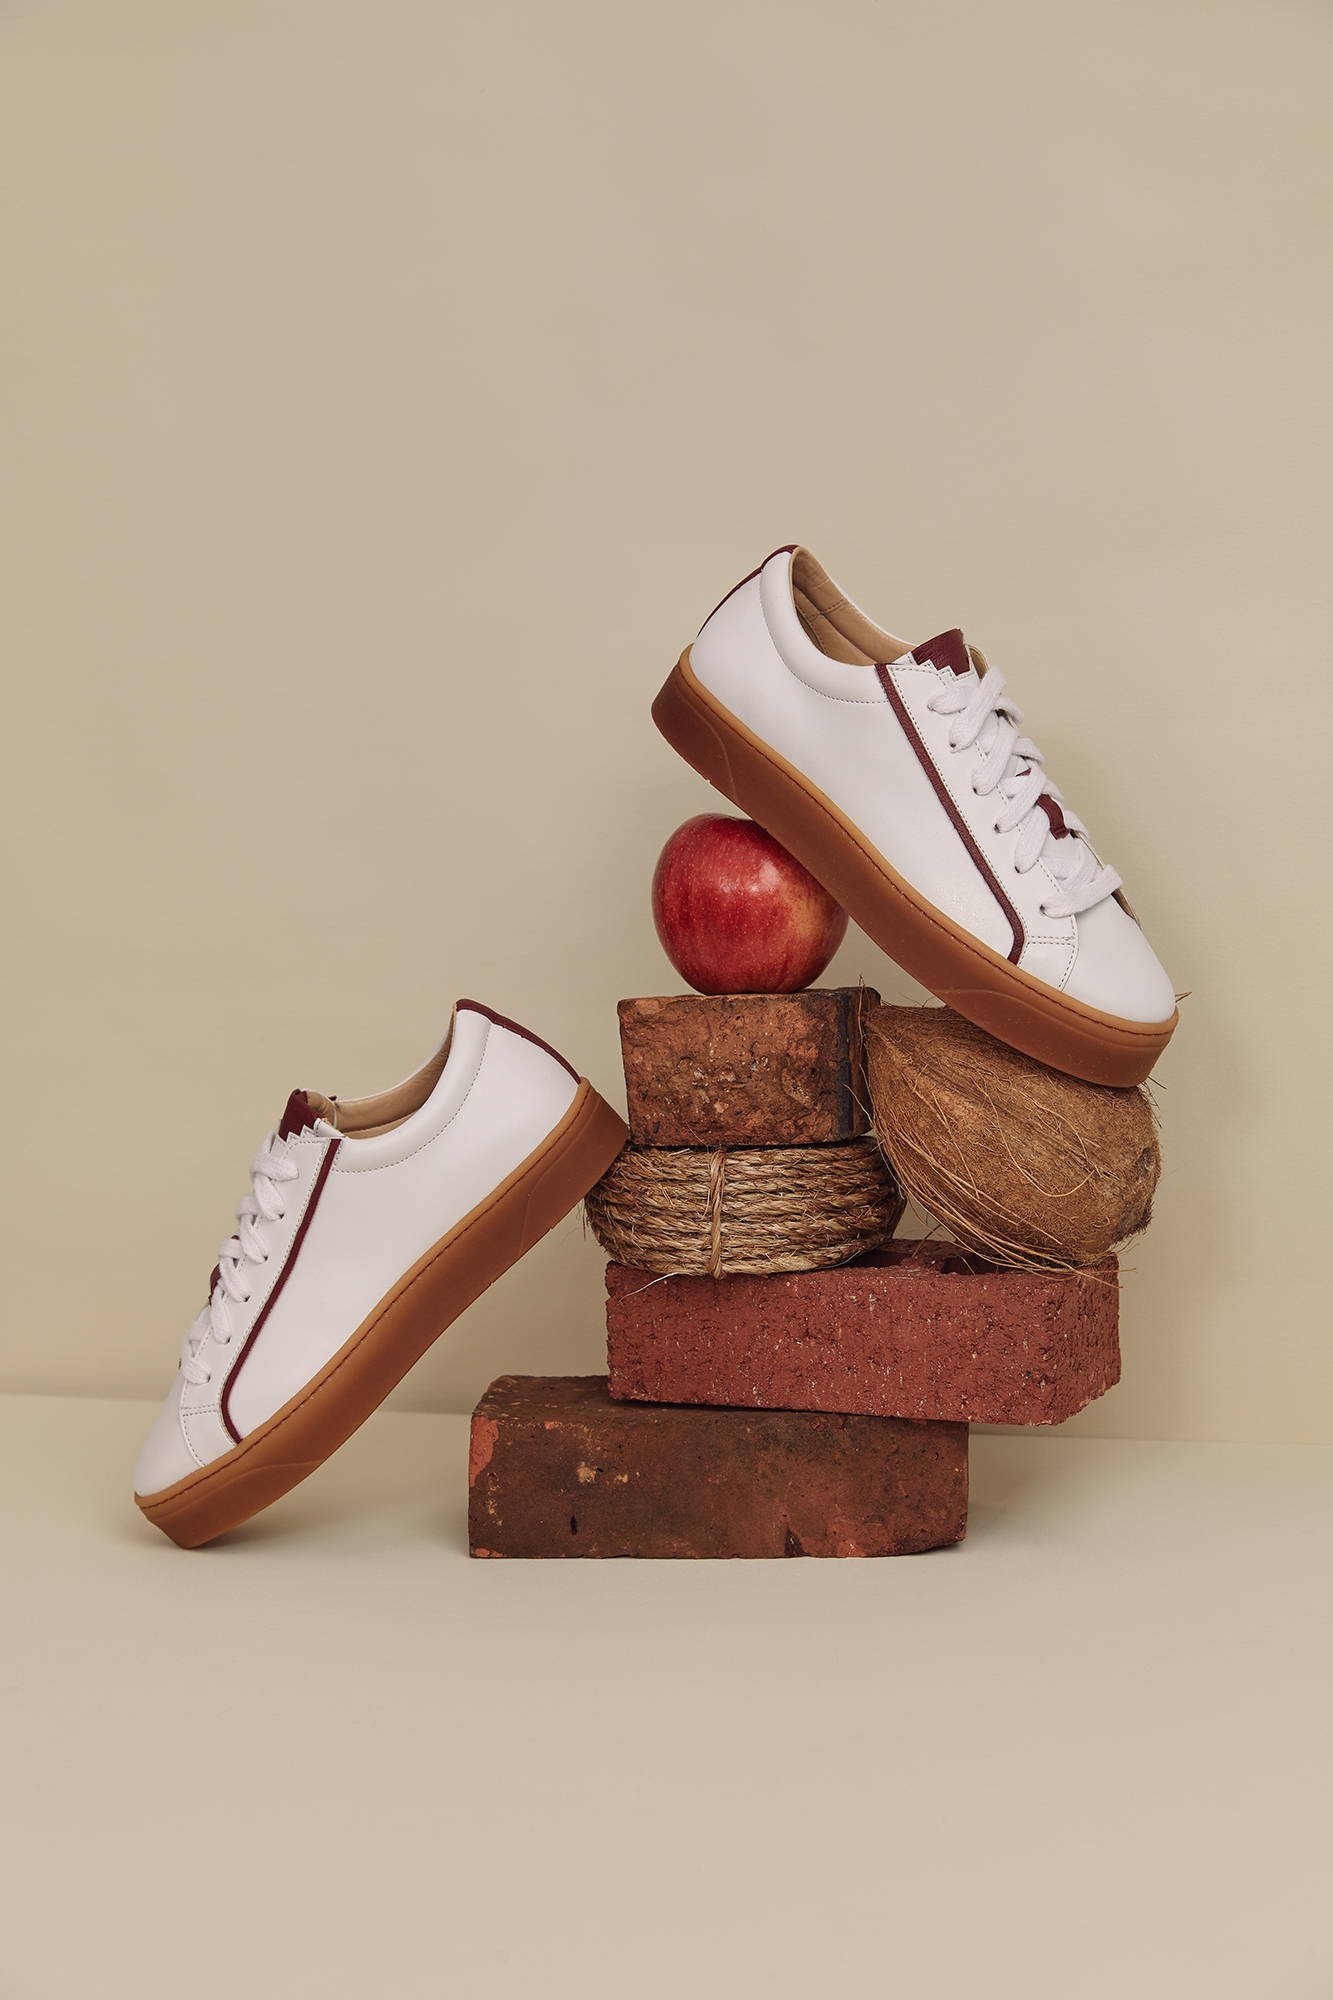 Apple leather and coconut husk plant-based and vegan sustainable sneakers from Sylven New York. The Mel in white vegan apple leather pictured with an apple, bricks,  and rope